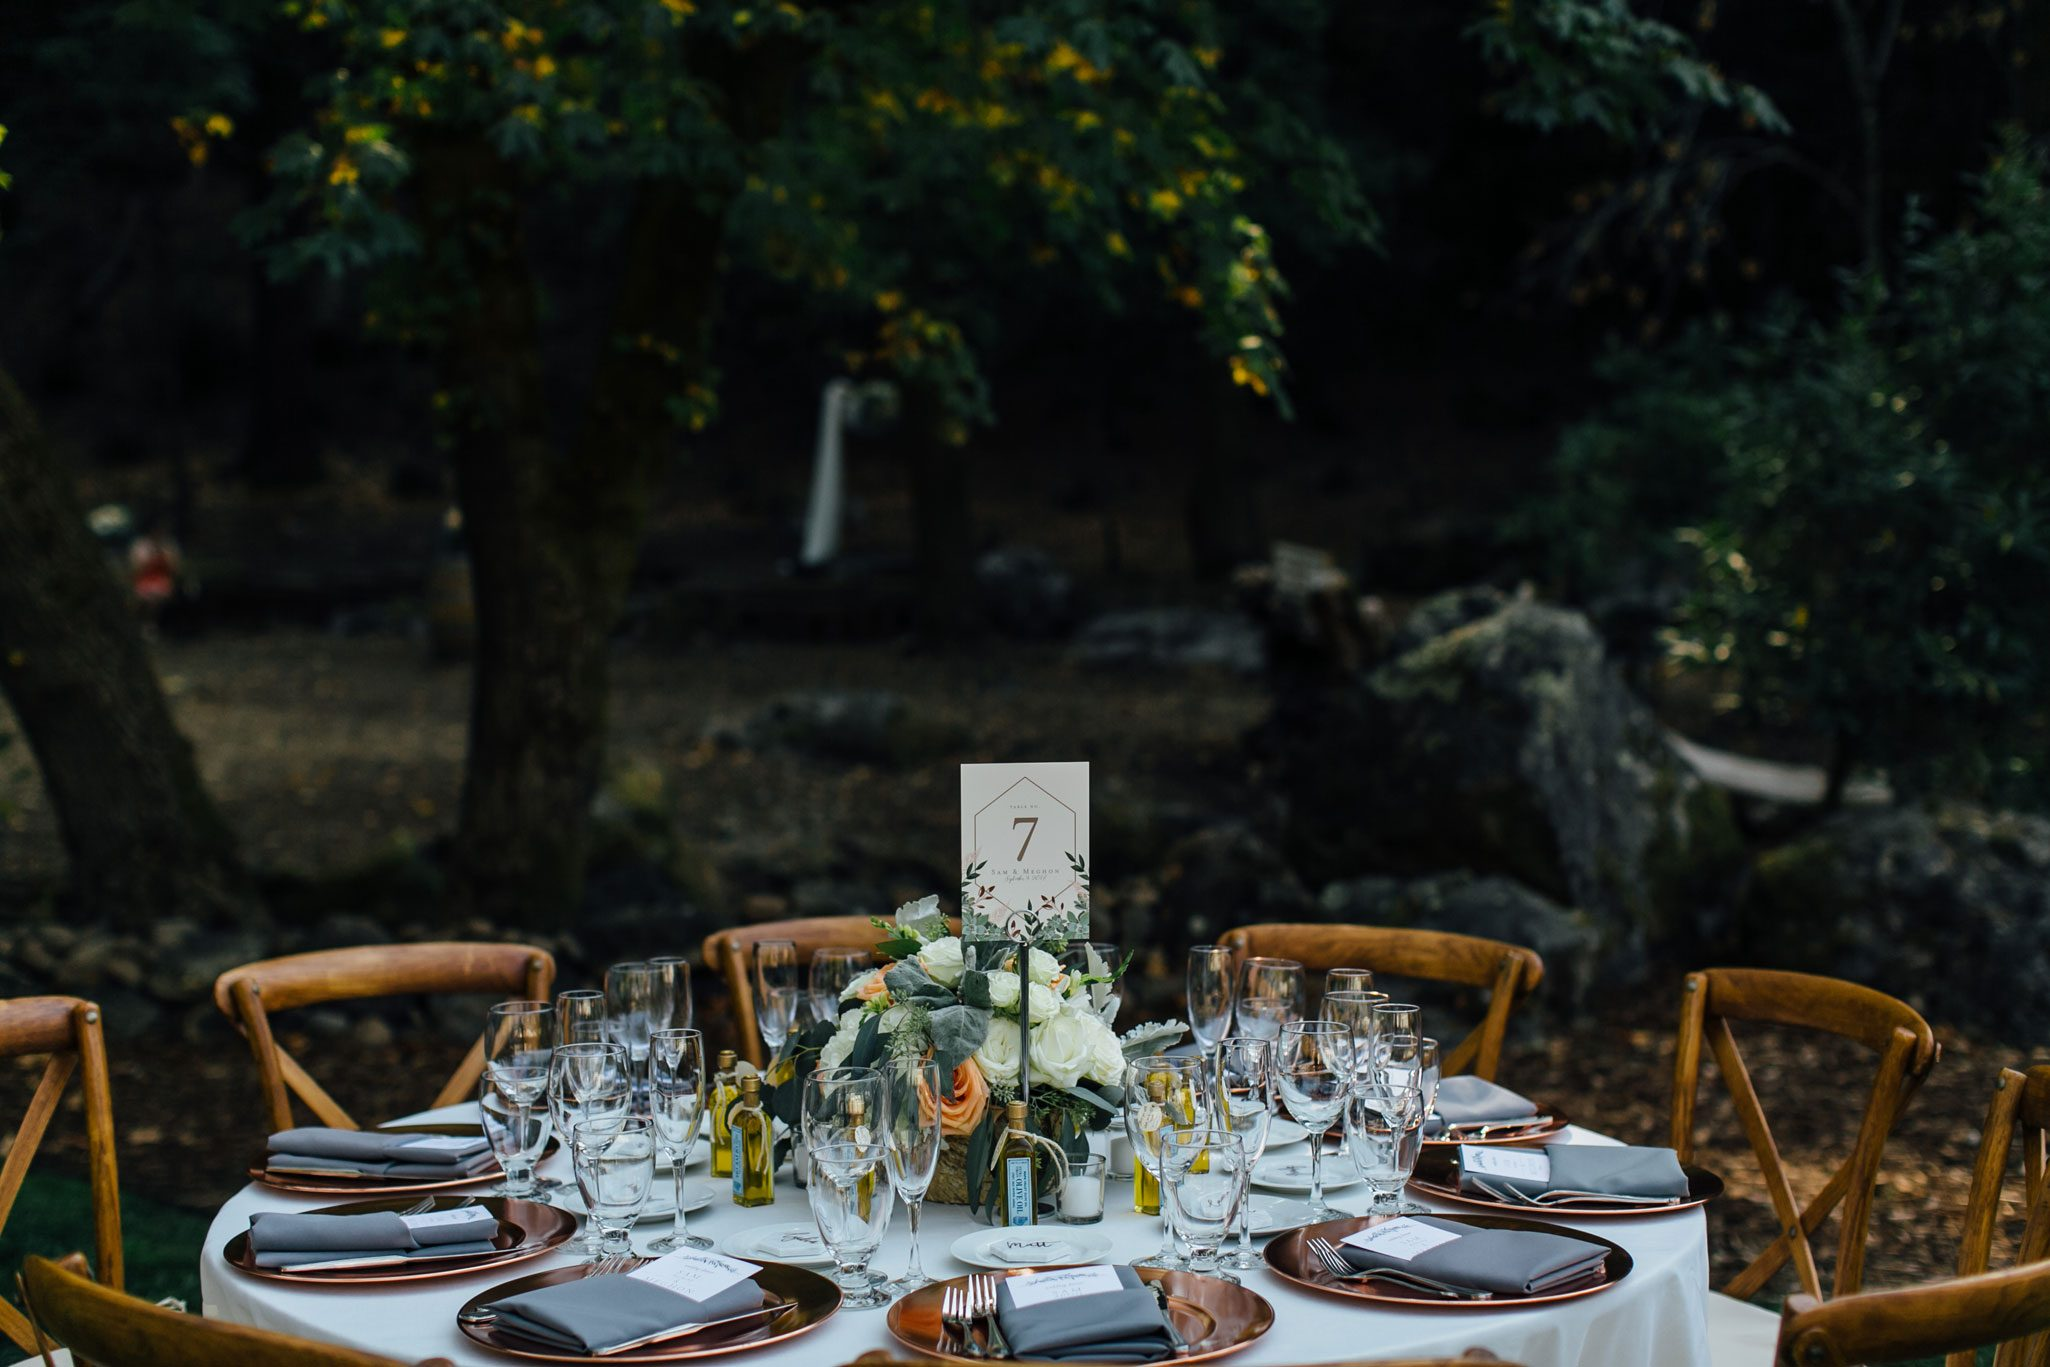 Tablescape with solid ivory table linen and grey napkins, and copper chargers